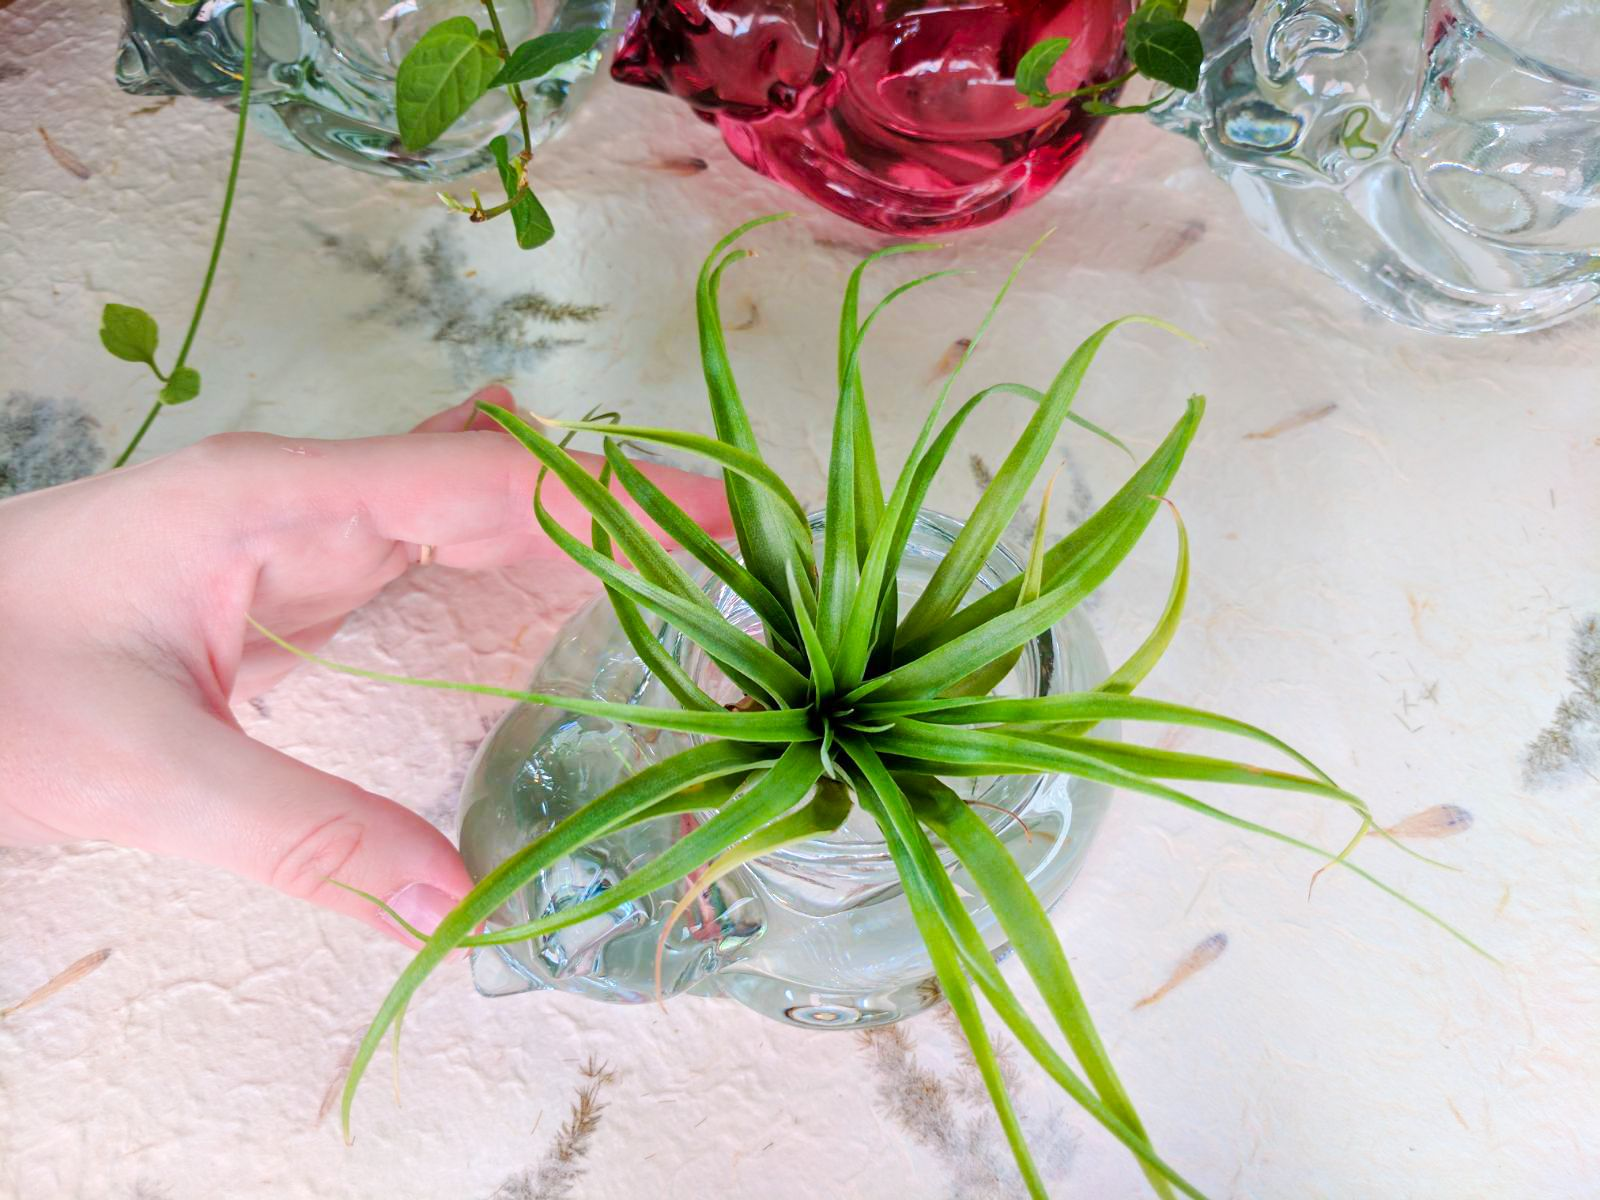 Tillandsia Air Plant And Glass Cat Planter #Tillandsia #Cat #Cats